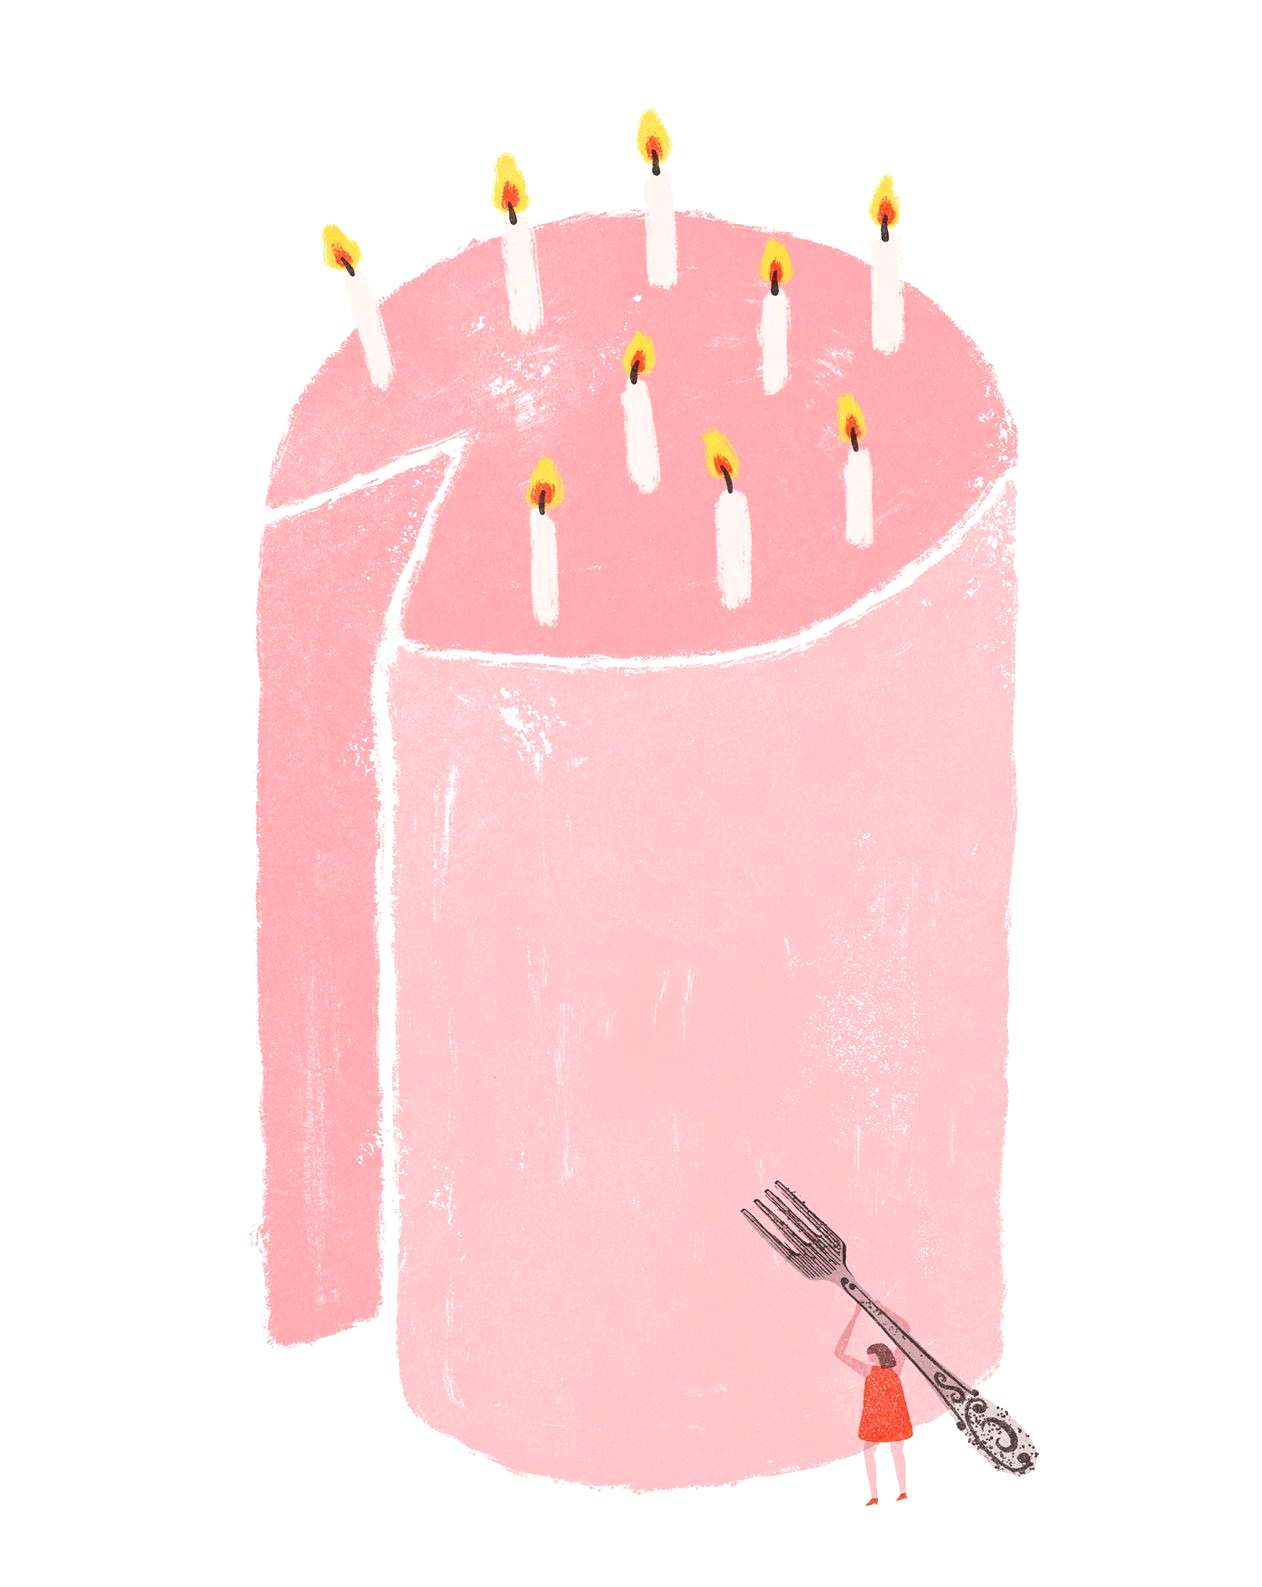 quotPink birthday cake with candlesquot | Illustration wall art | Art for happy walls | Shop colourful fi